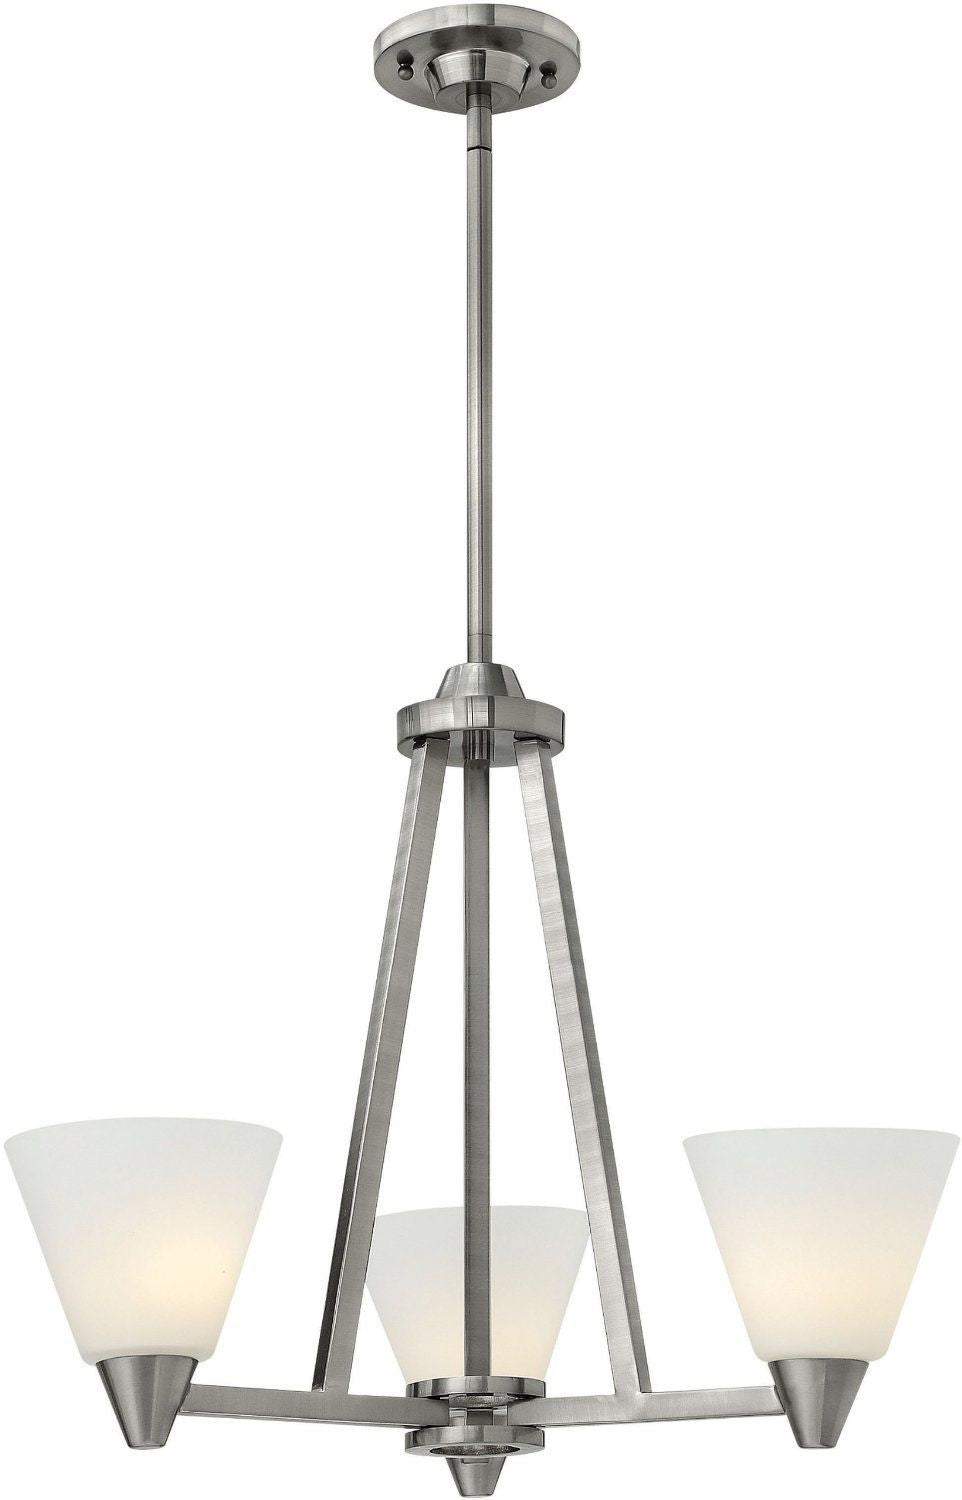 Hinkley lighting 3663 bn dillon collection three light hanging hinkley lighting 3663 bn dillon collection three light hanging chandelier in brushed nickel finish discount arubaitofo Gallery